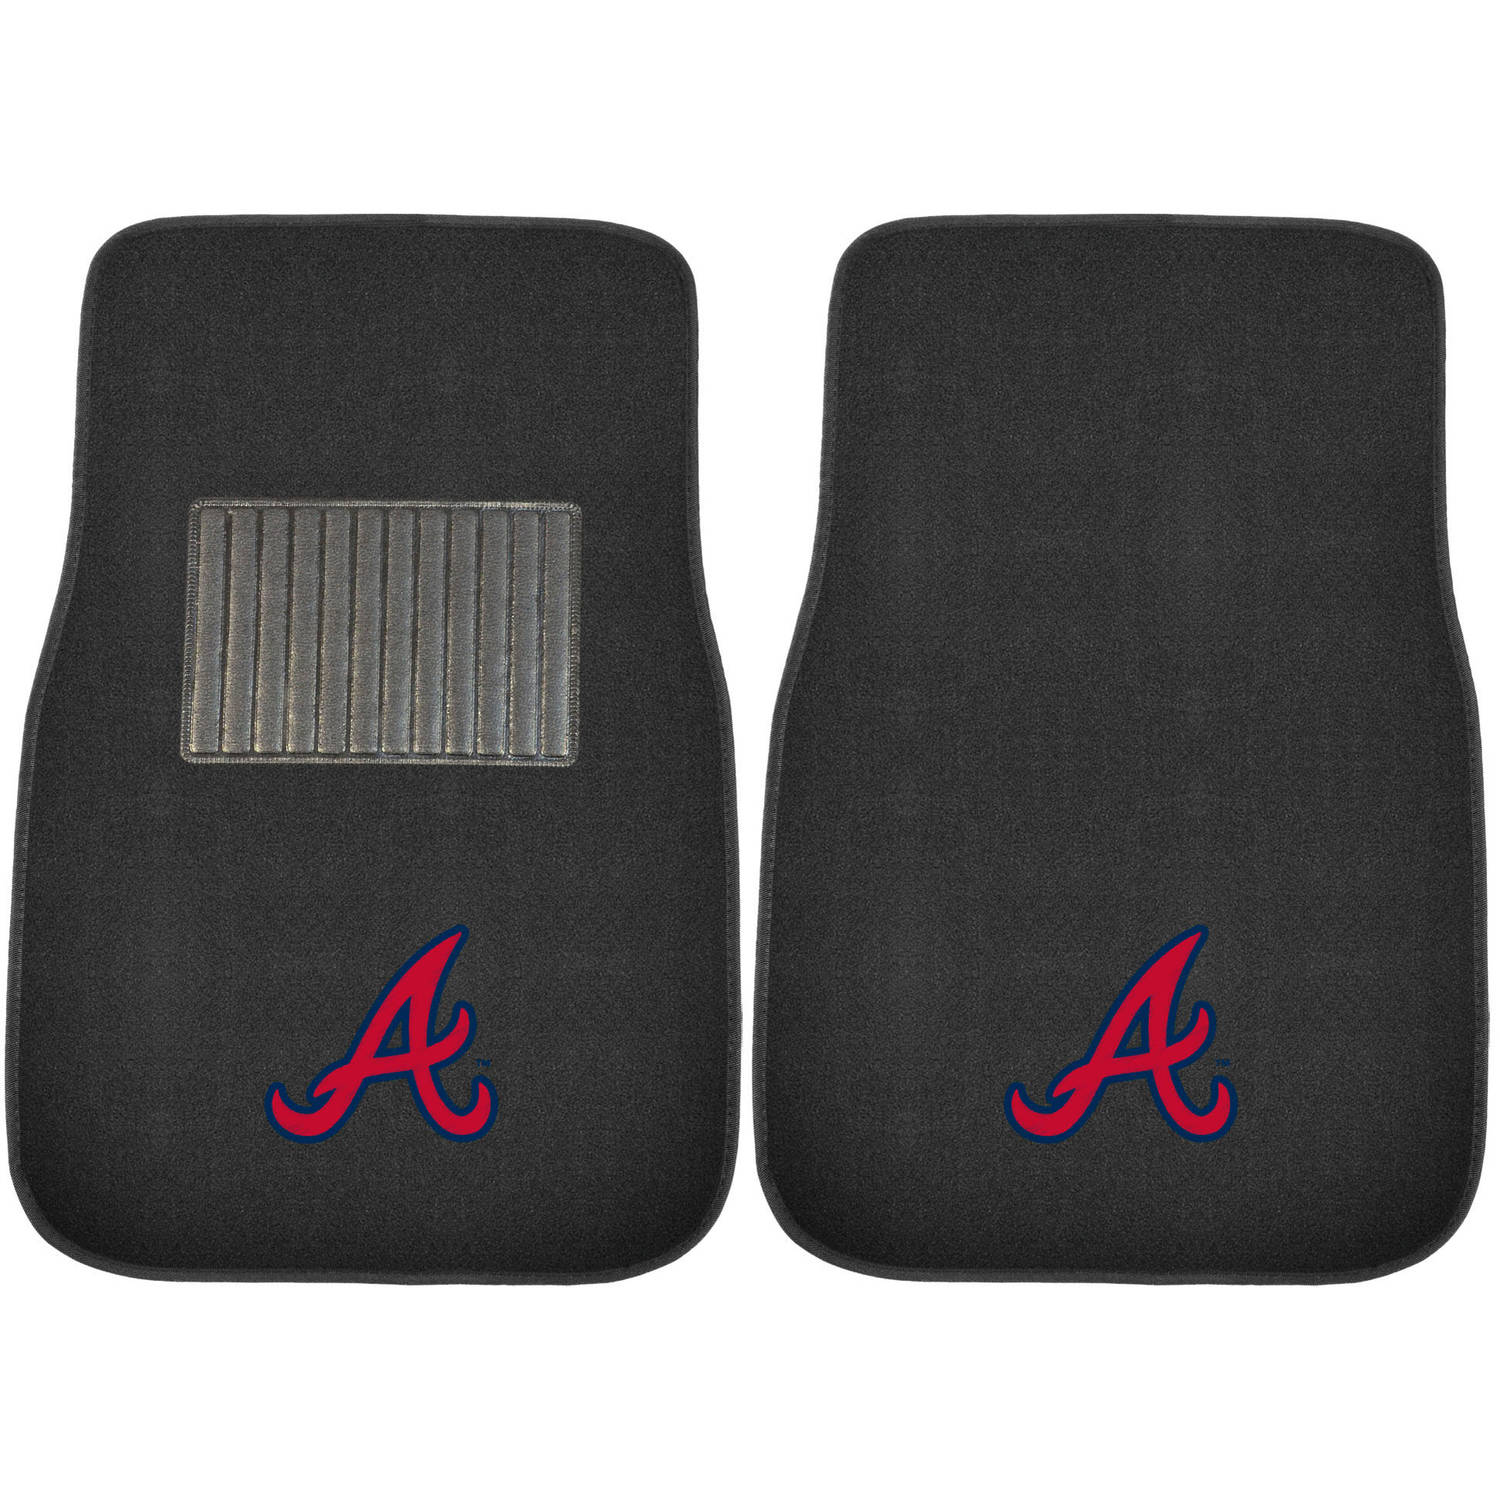 MLB Atlanta Braves Embroidered Car Mats